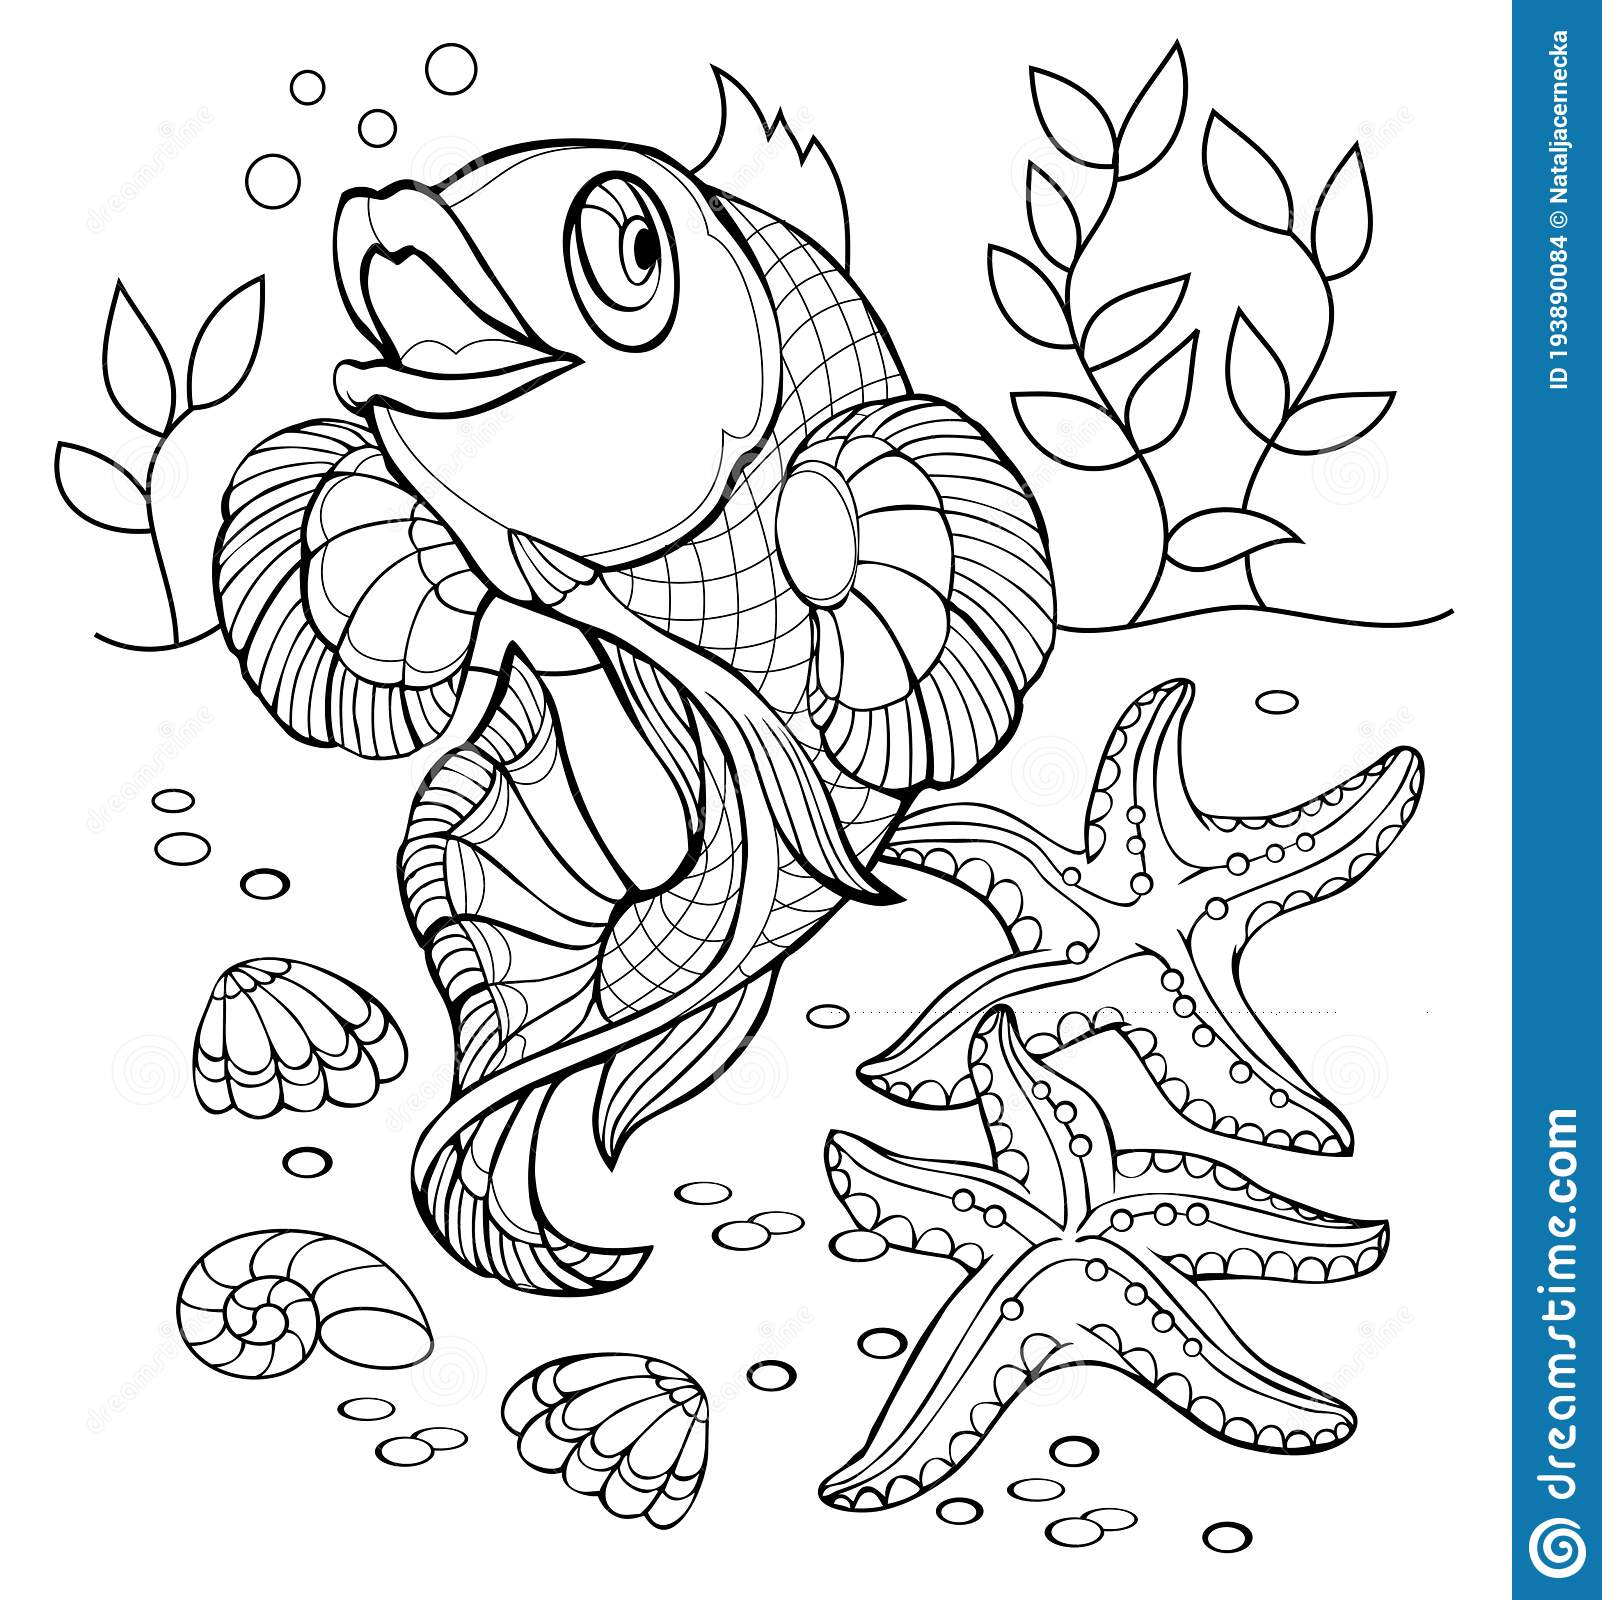 Cute Fish Coloring Page Stock Illustrations 2 190 Cute Fish Coloring Page Stock Illustrations Vectors Clipart Dreamstime